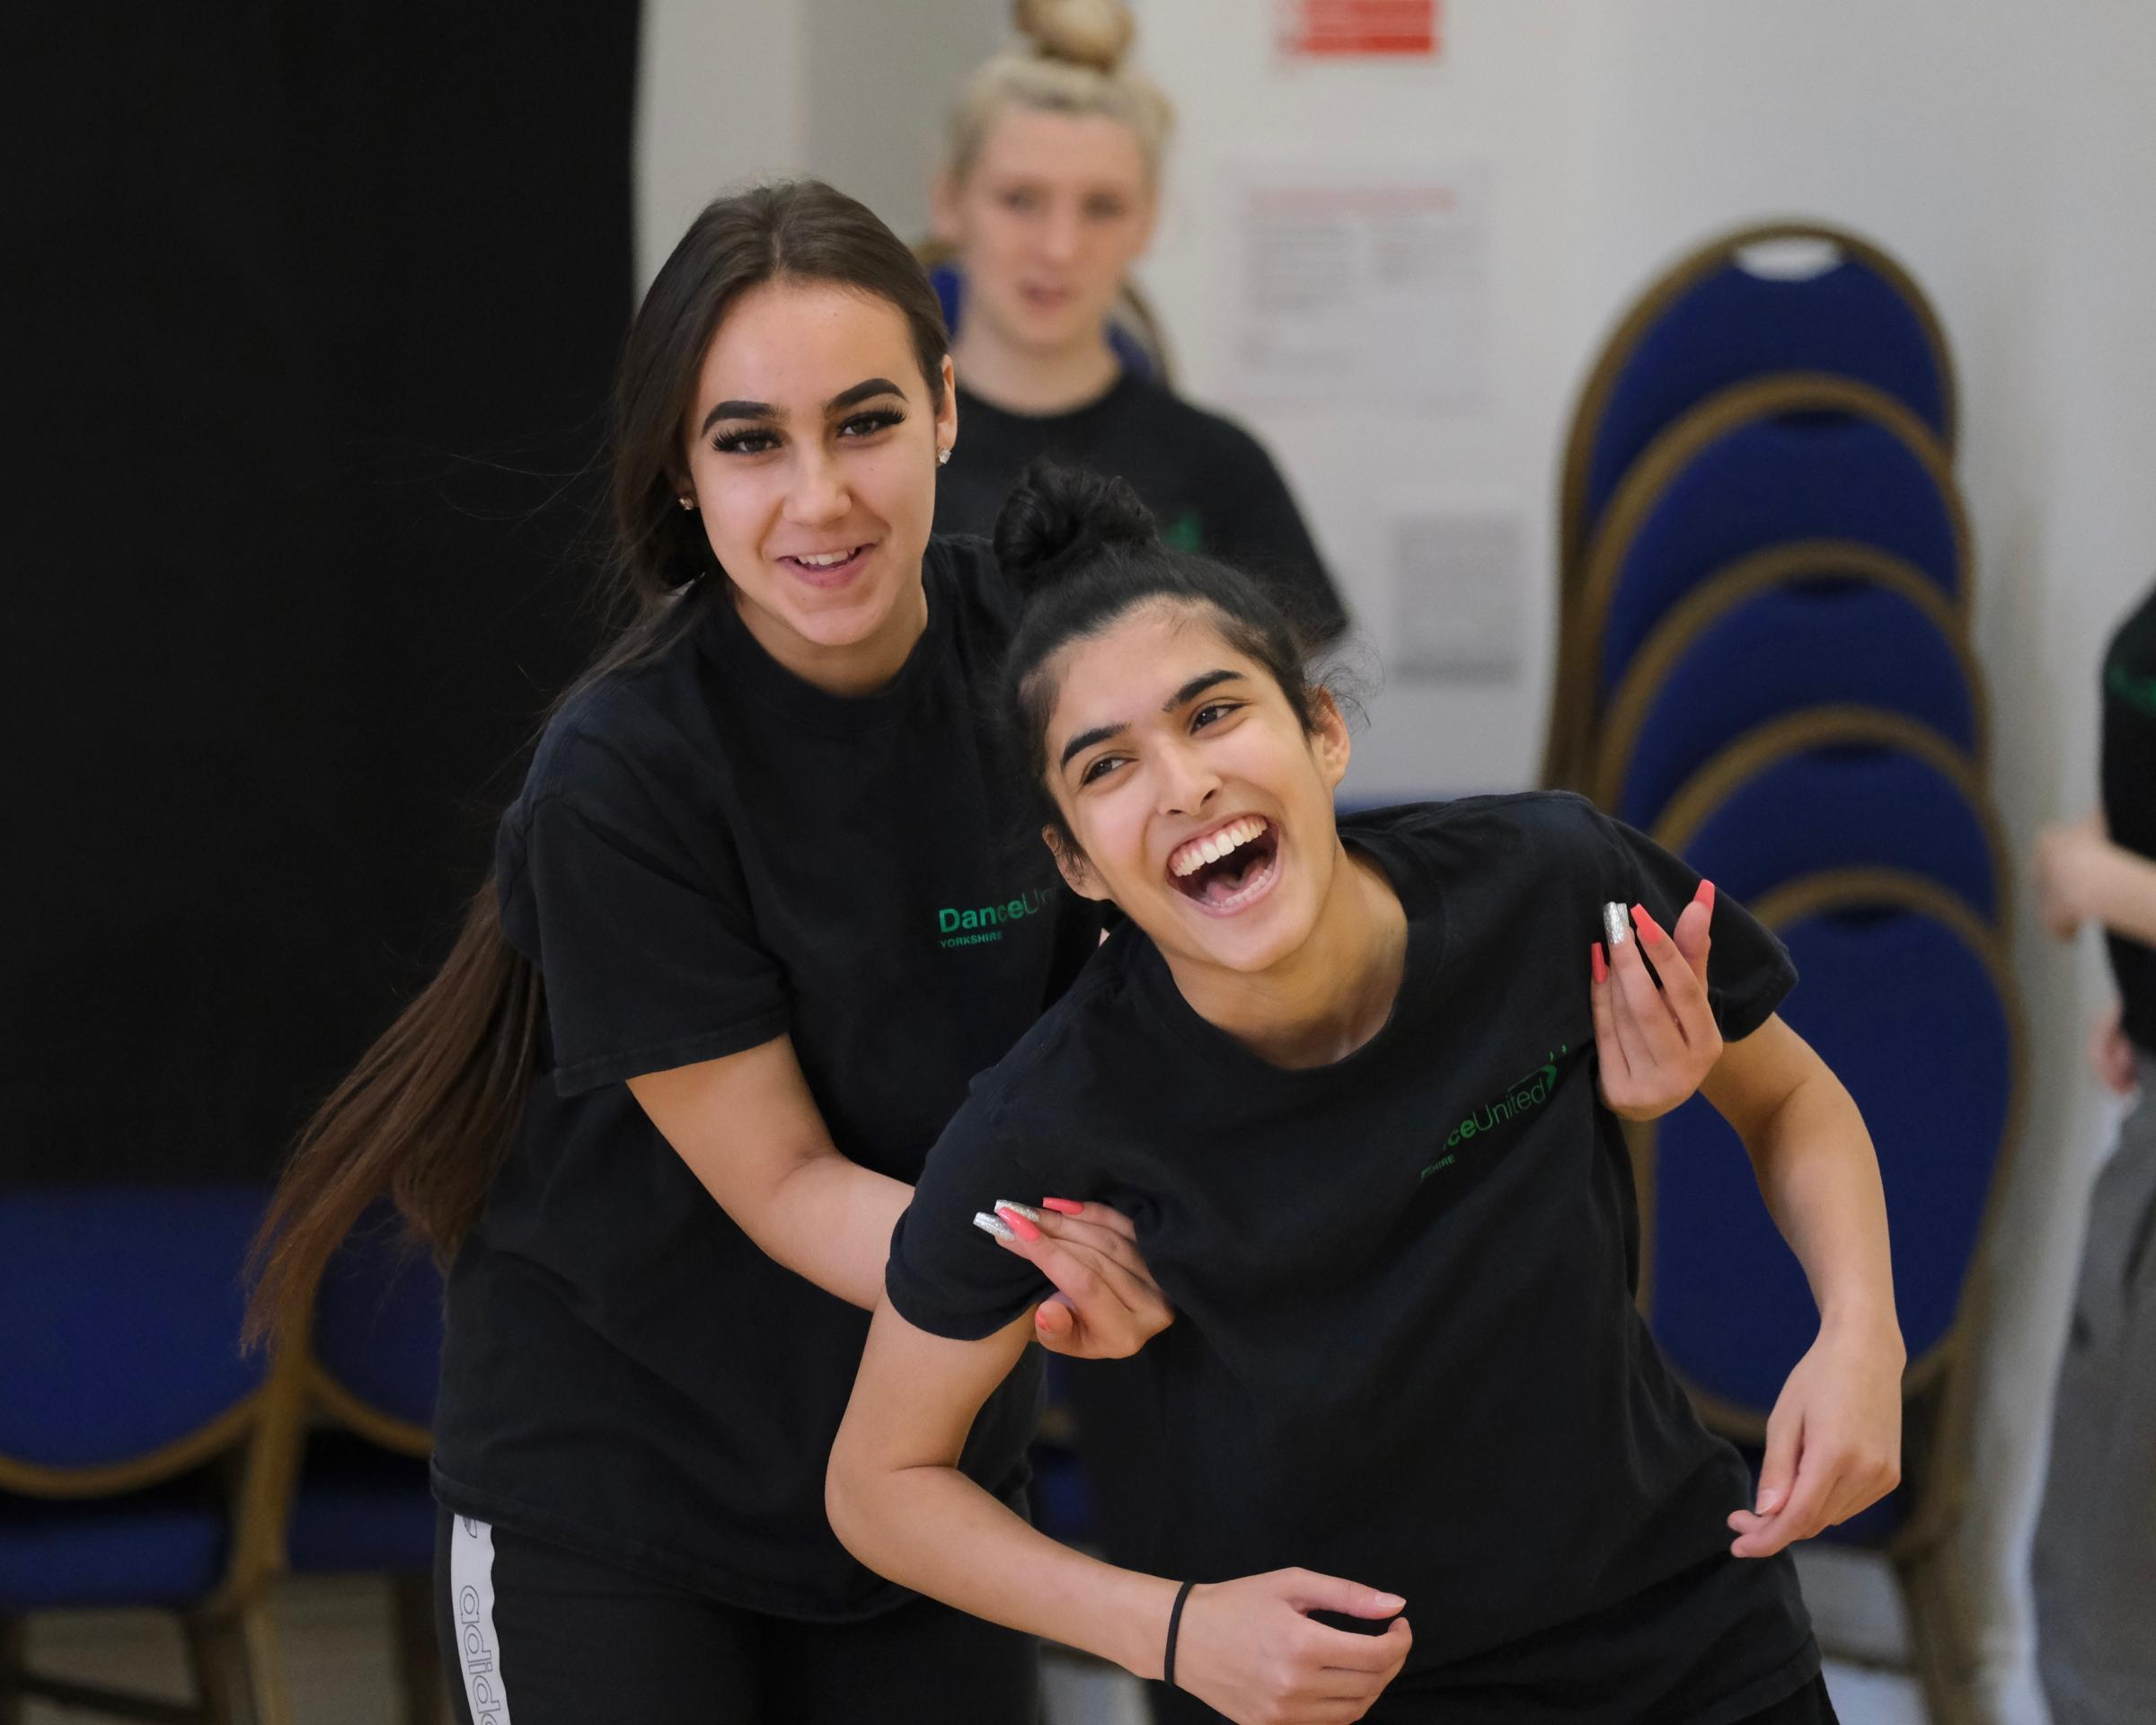 New Adventures working with Bradford youngsters on dance show